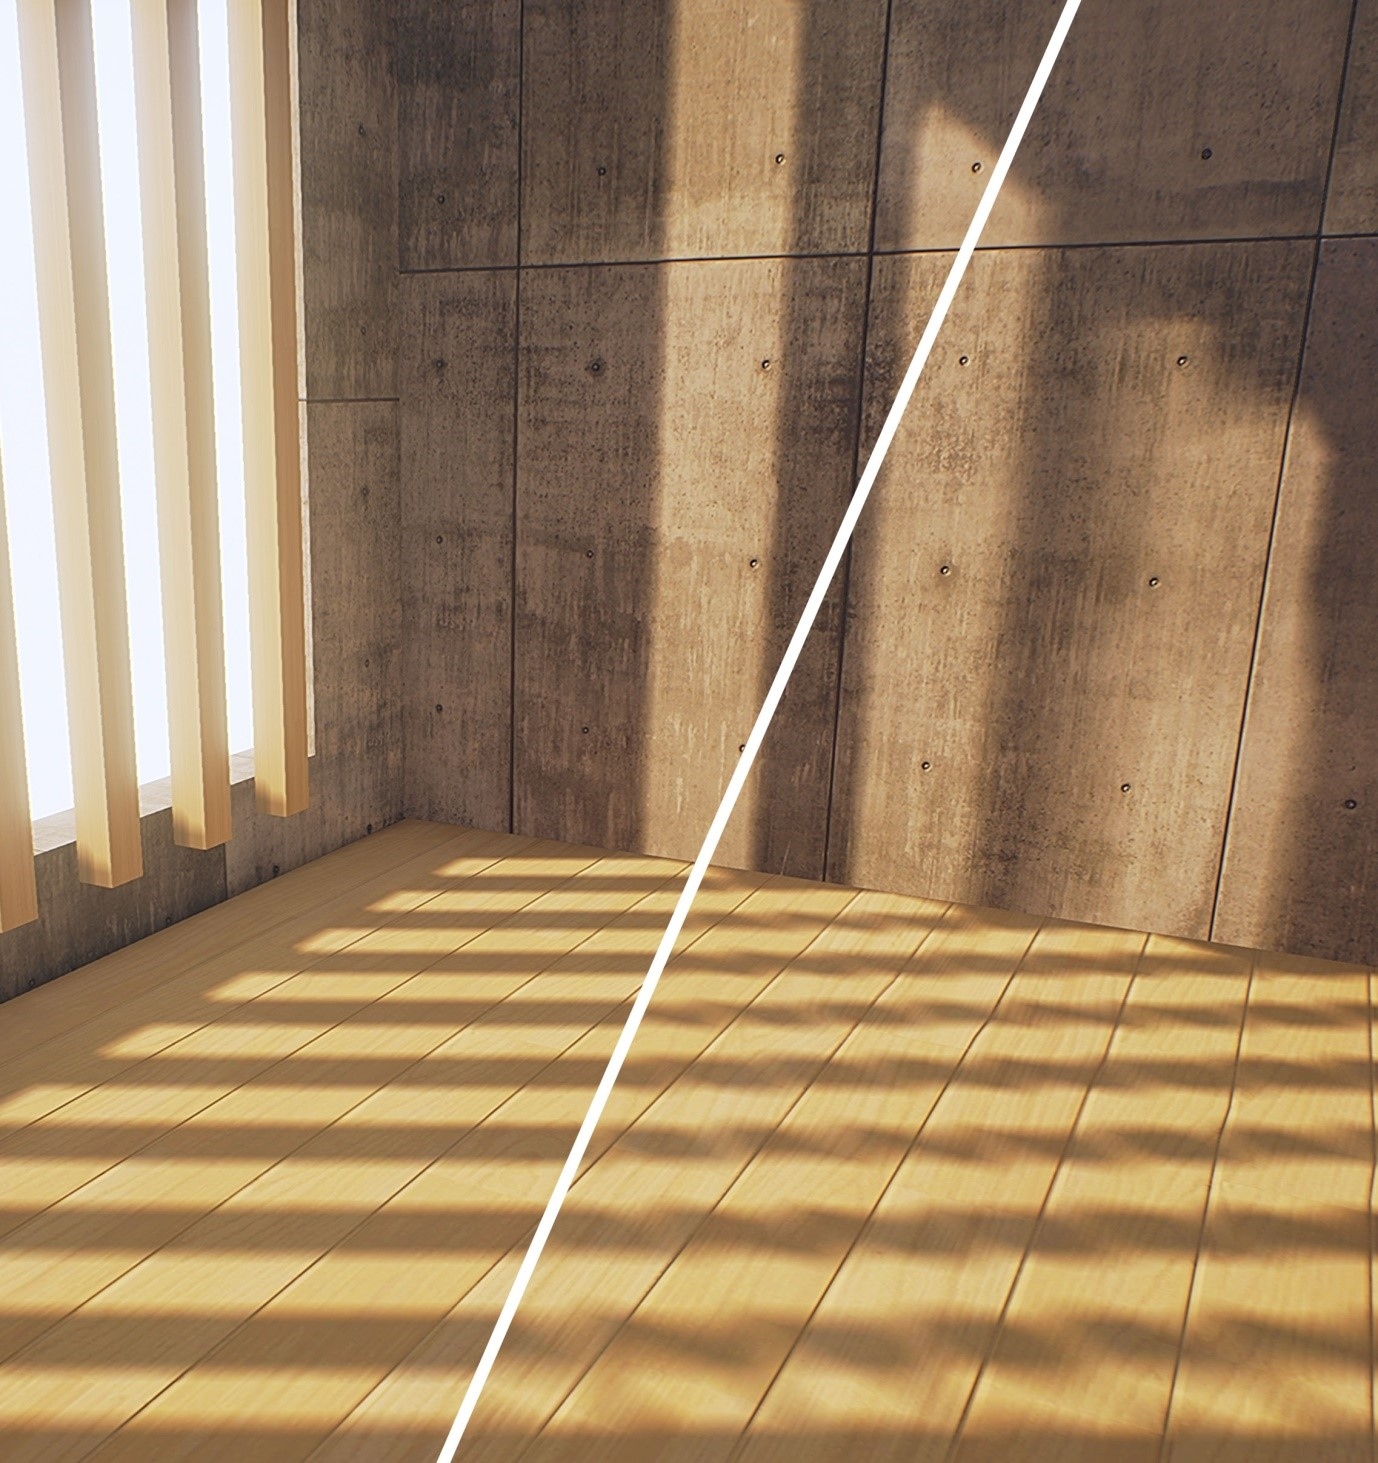 Figure 2: Notice how the quality of the shadows cast by the wooden sun blinds in this architectural visualization is insufficient for the default quality settings. Doubling the resolution of the baked textures resolves the quality issues.